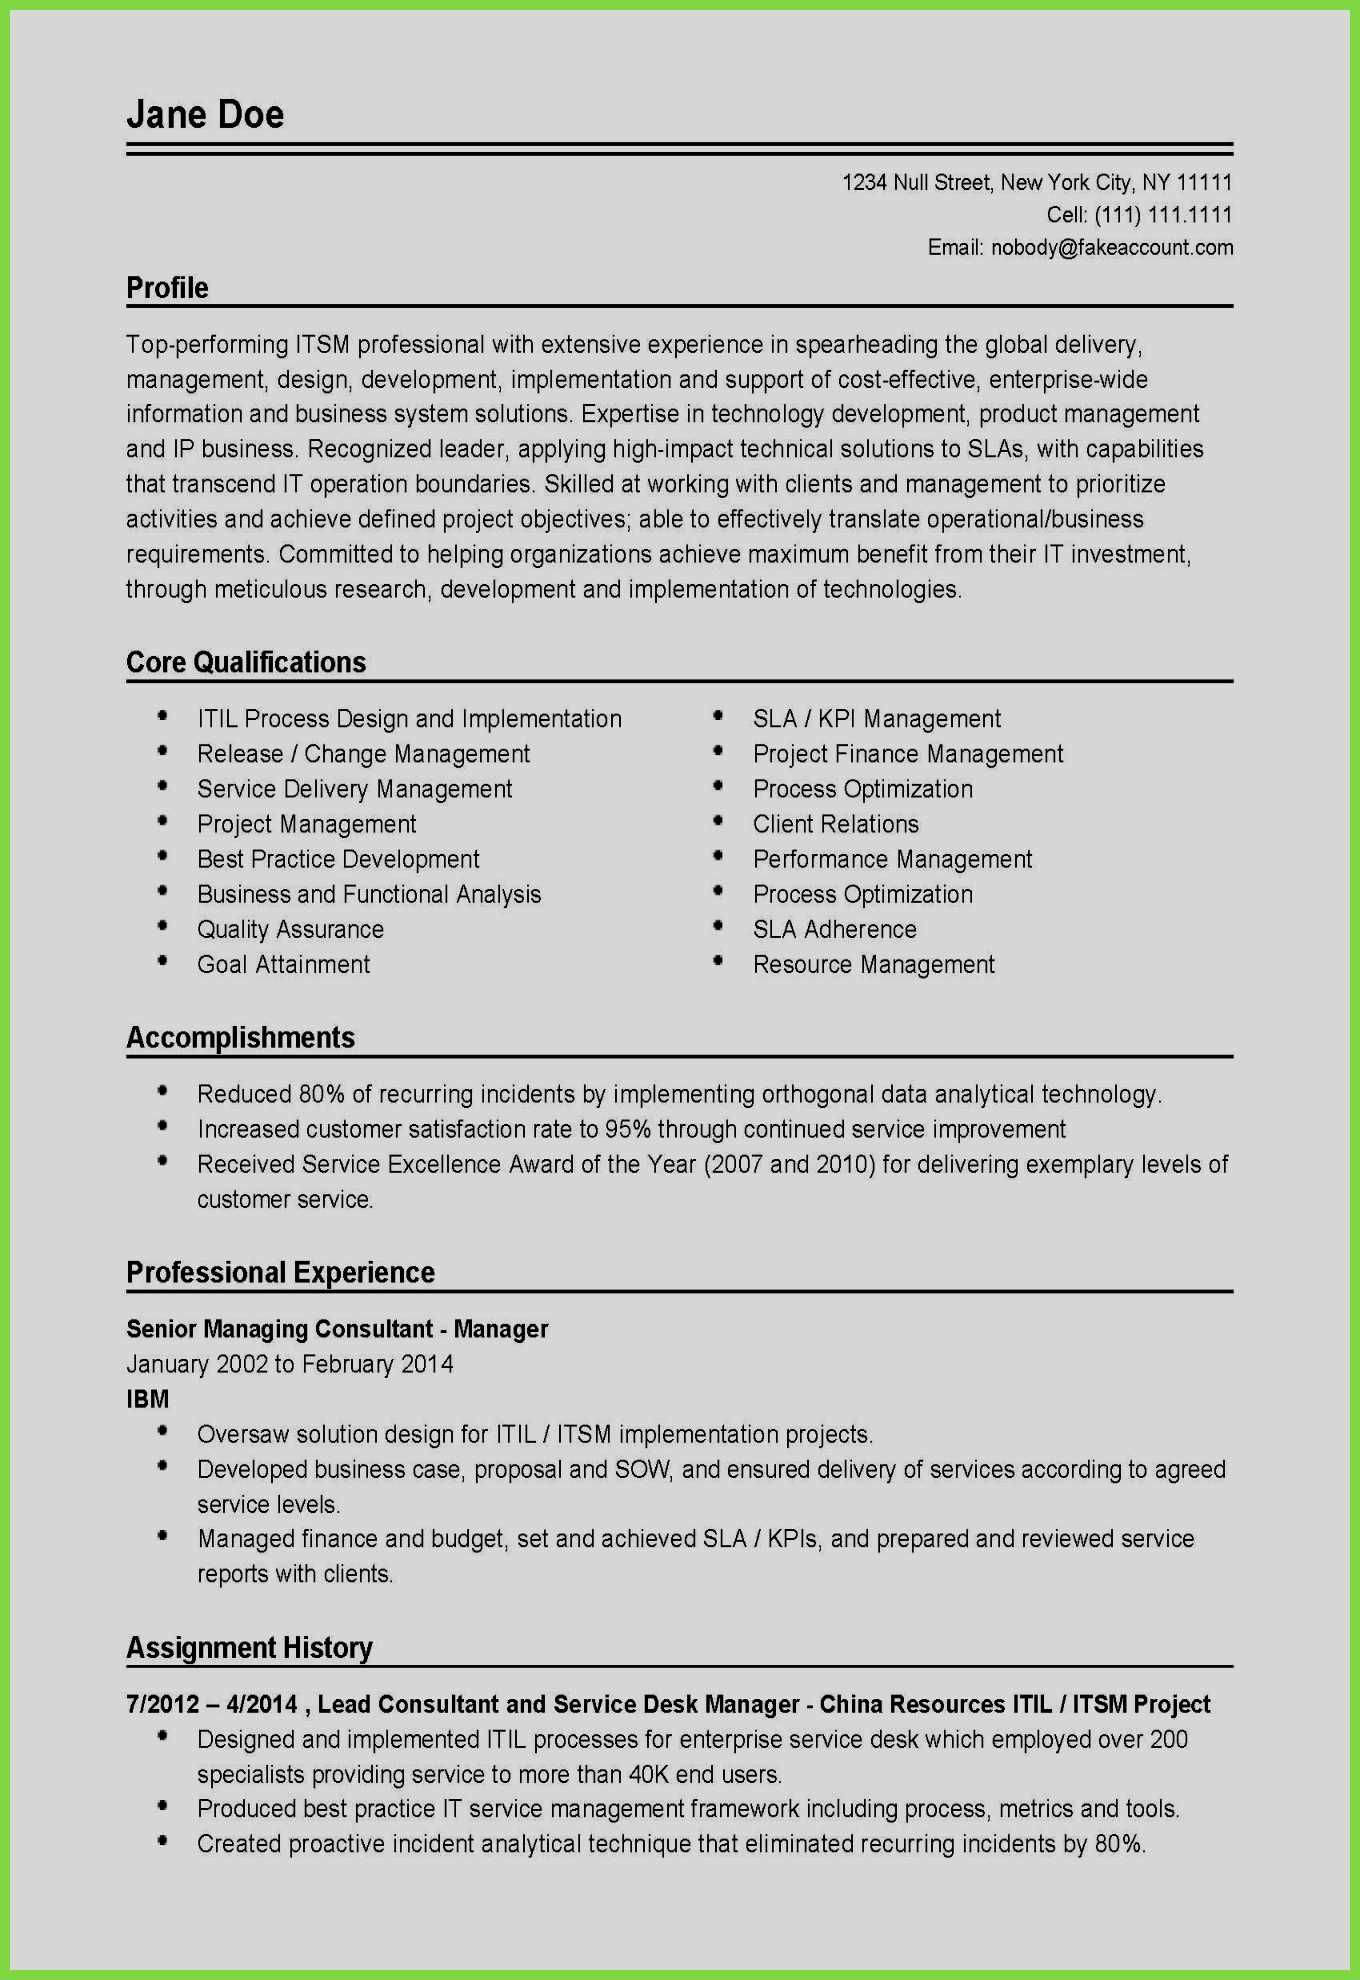 79 Beautiful Image Of Sample Resume For Manager Level Check More At Https Www Ourpetscrawley Com 79 Beautiful Image Of Sample Resume For Manager Level